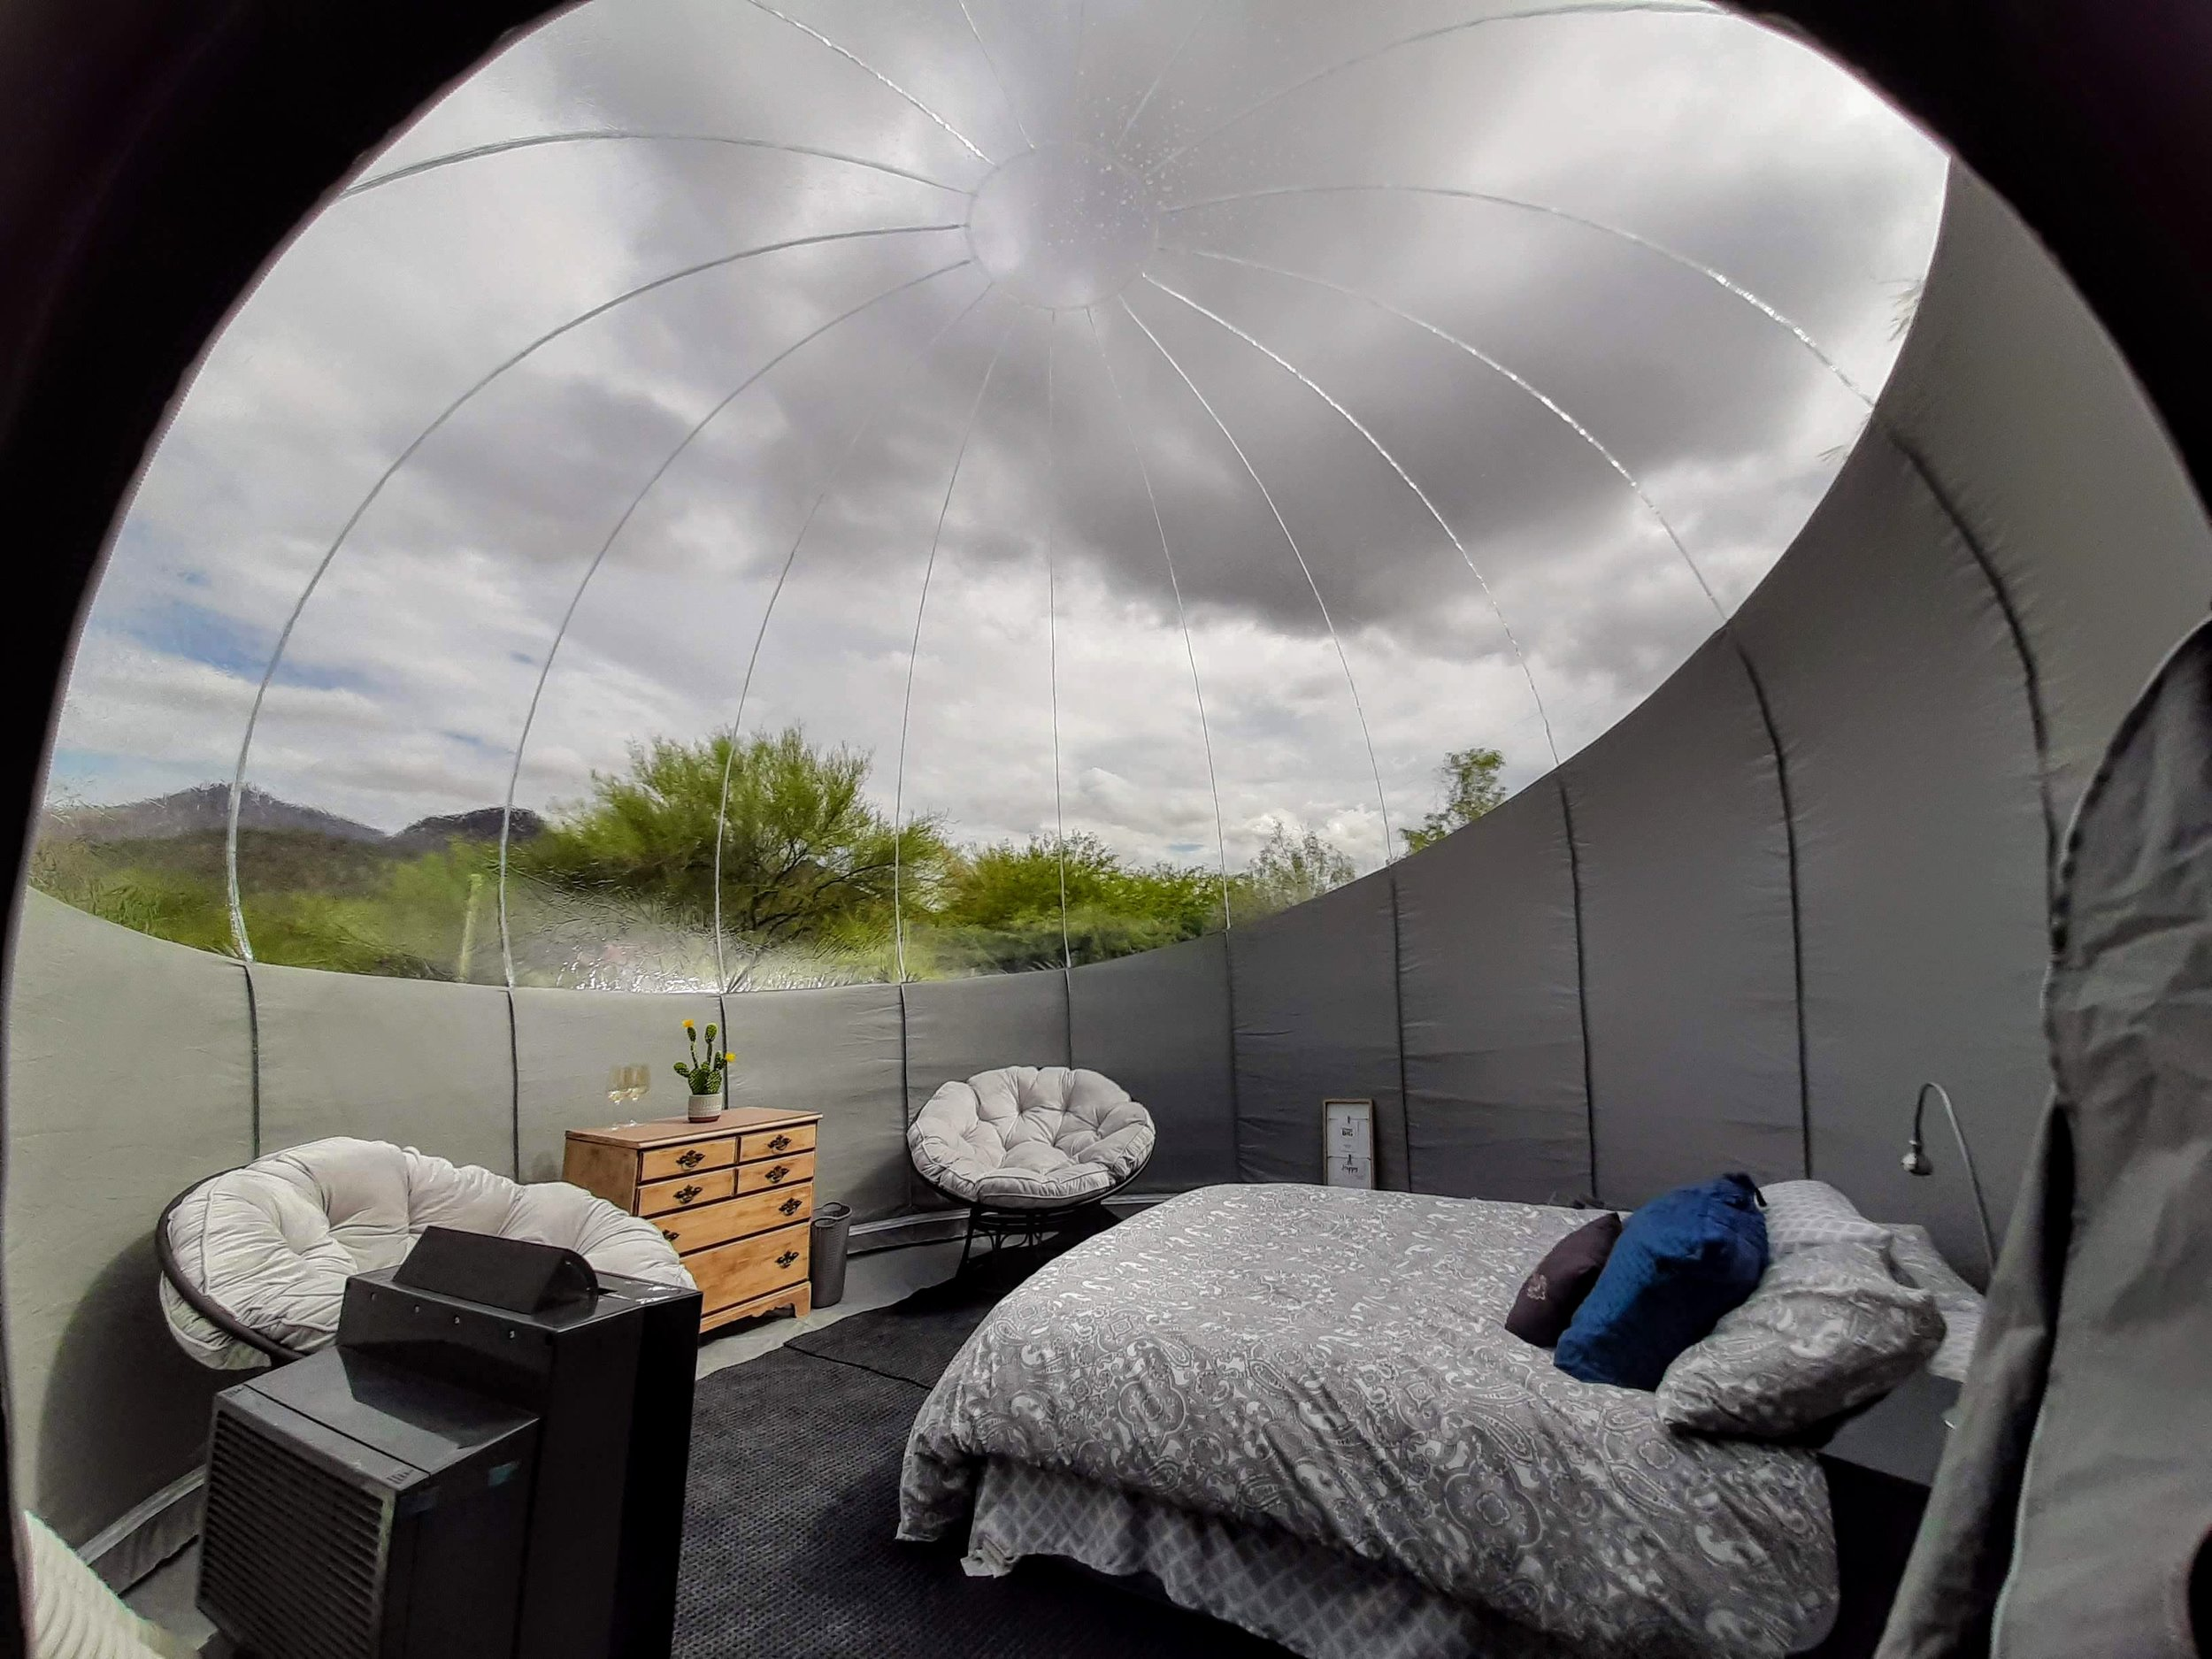 Bubble Cottages_Bubble Huts LLC_ Bubble Tent_Airbnb_Arizona.jpg